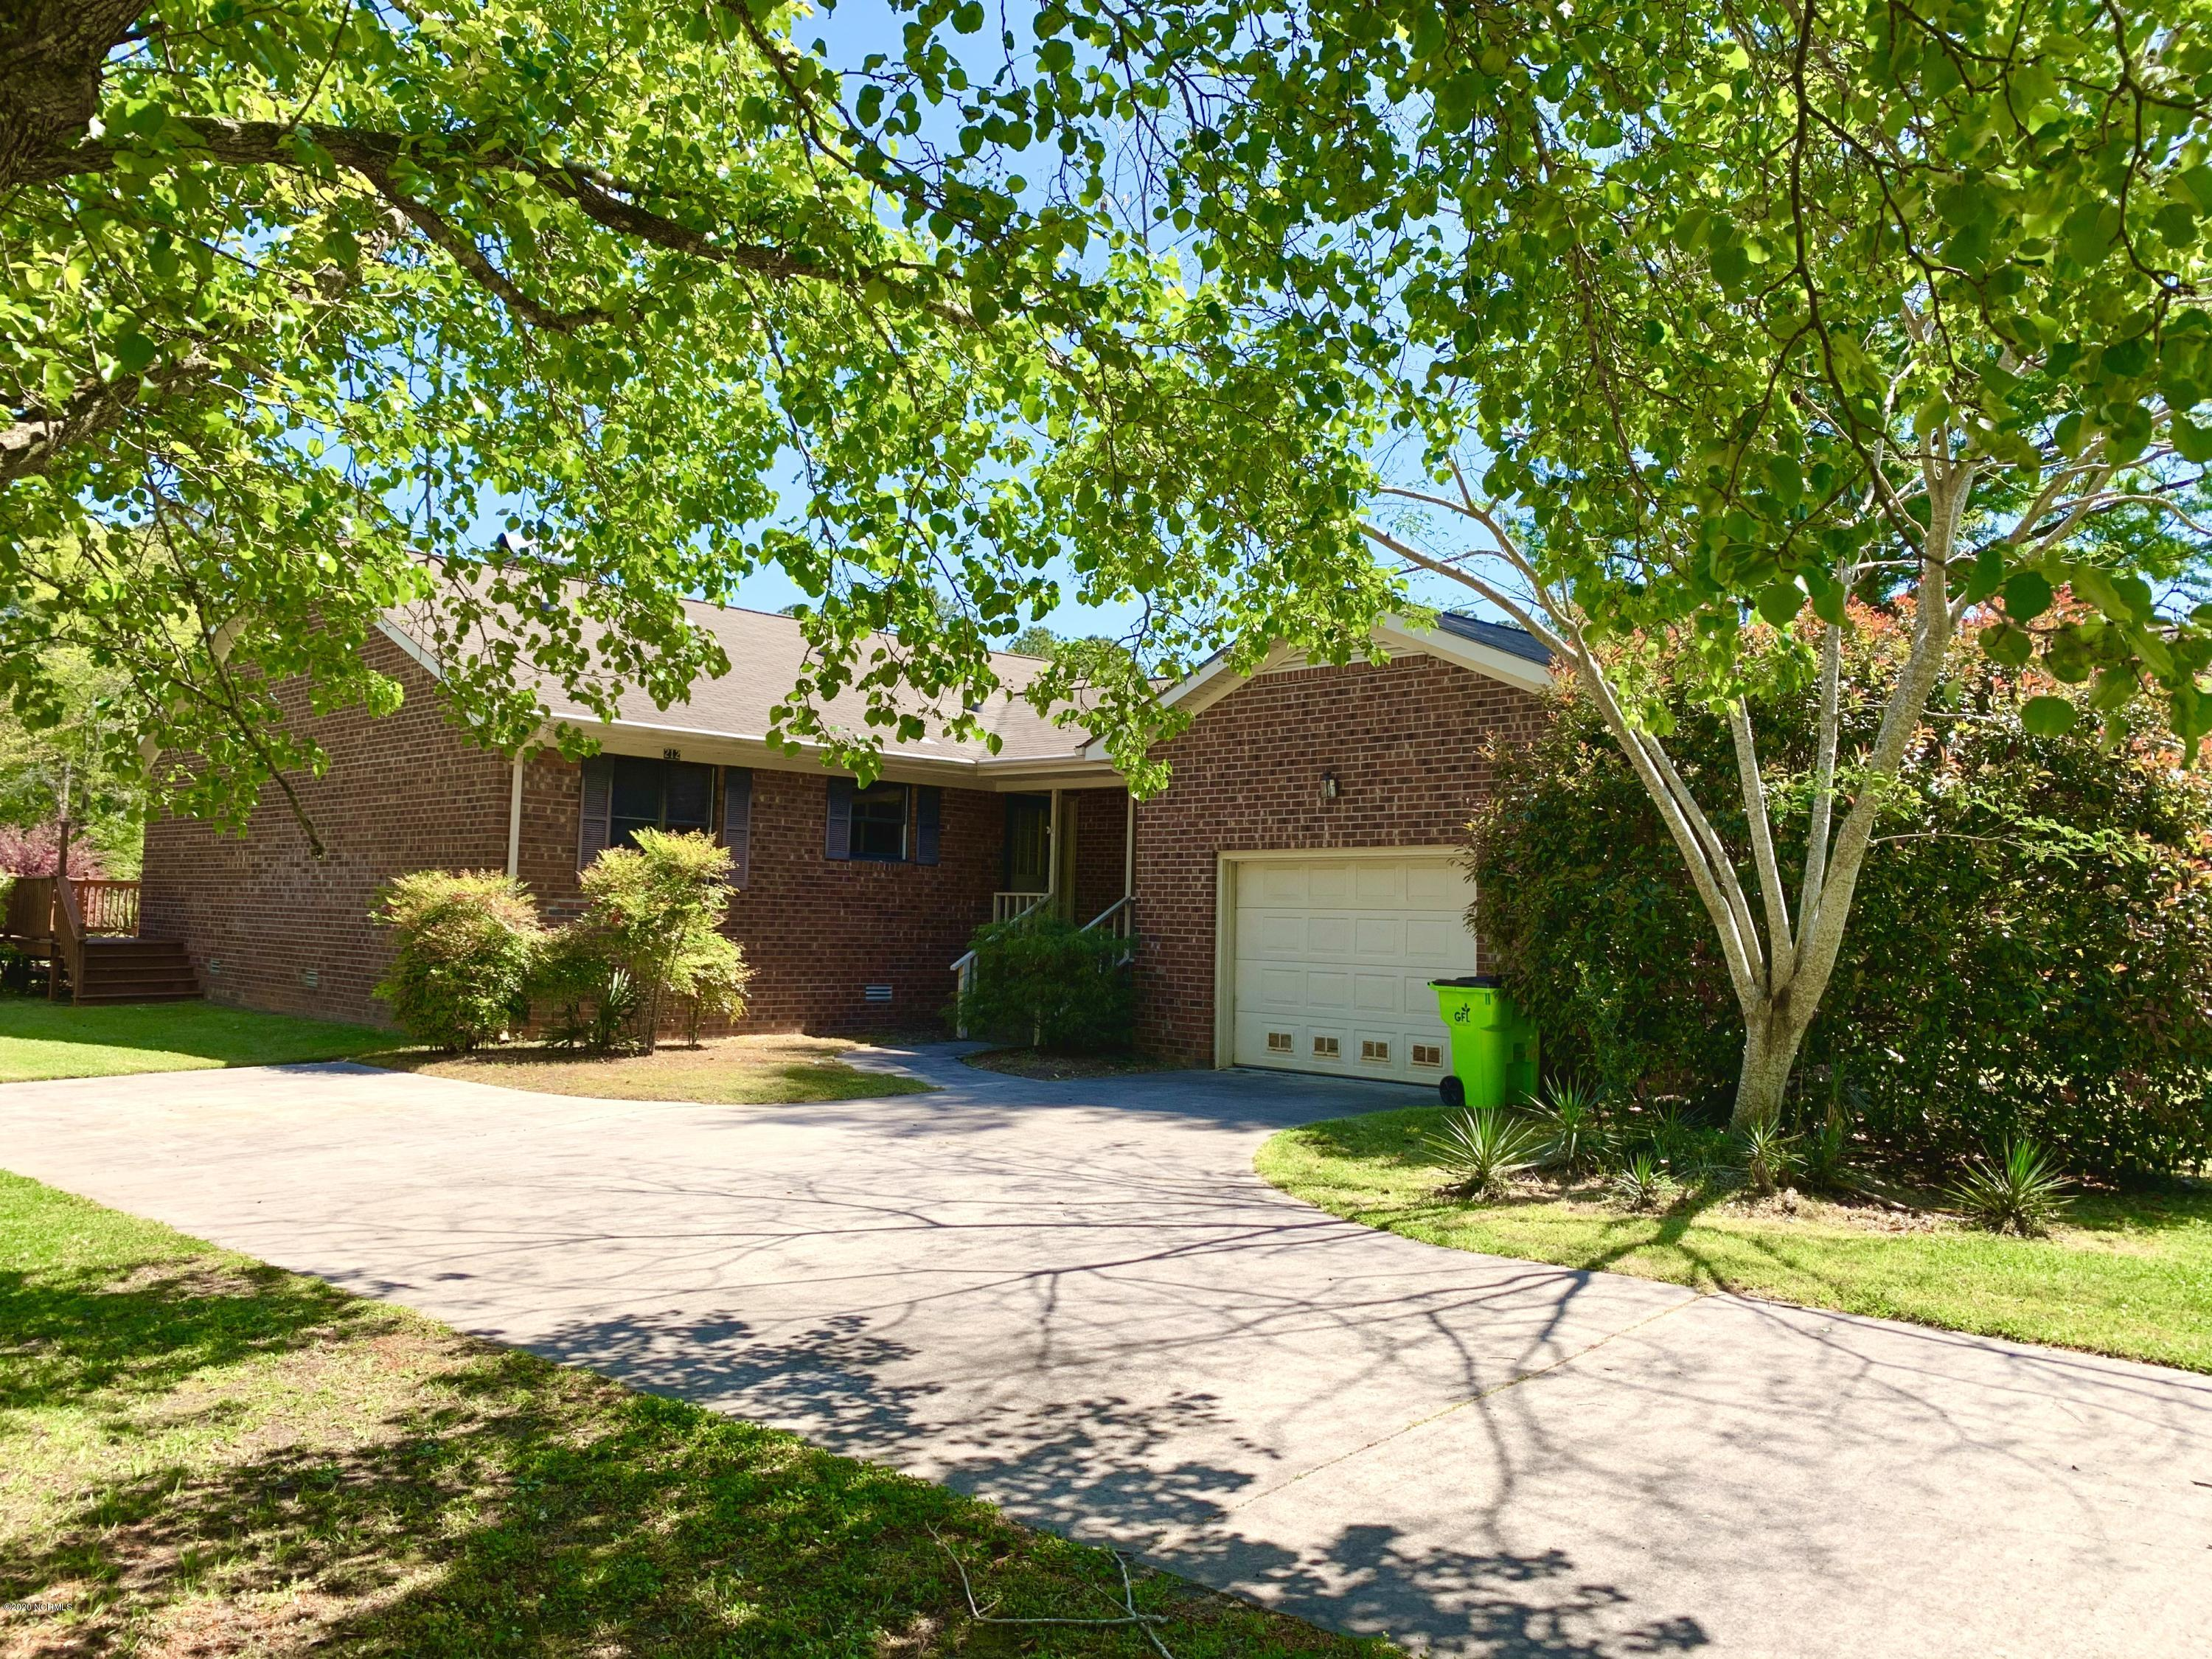 212 Channel Run Drive, New Bern, North Carolina 28562, 3 Bedrooms Bedrooms, 6 Rooms Rooms,2 BathroomsBathrooms,Single family residence,For sale,Channel Run,100213714